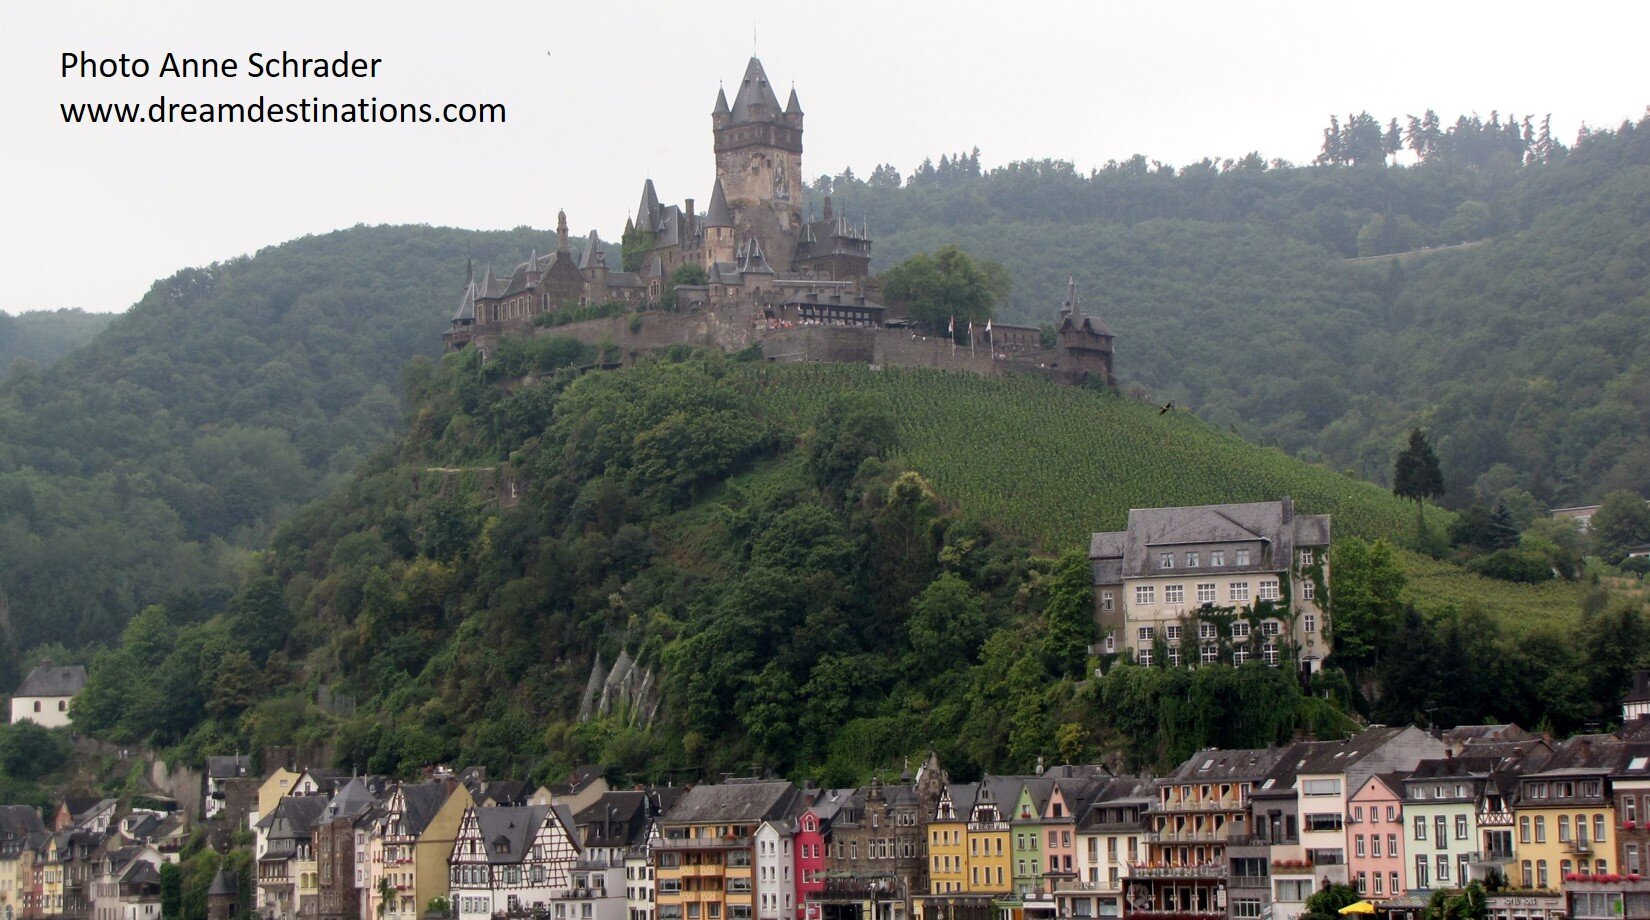 Reichsburg Castle on the hill above Cochem by the Mosel River